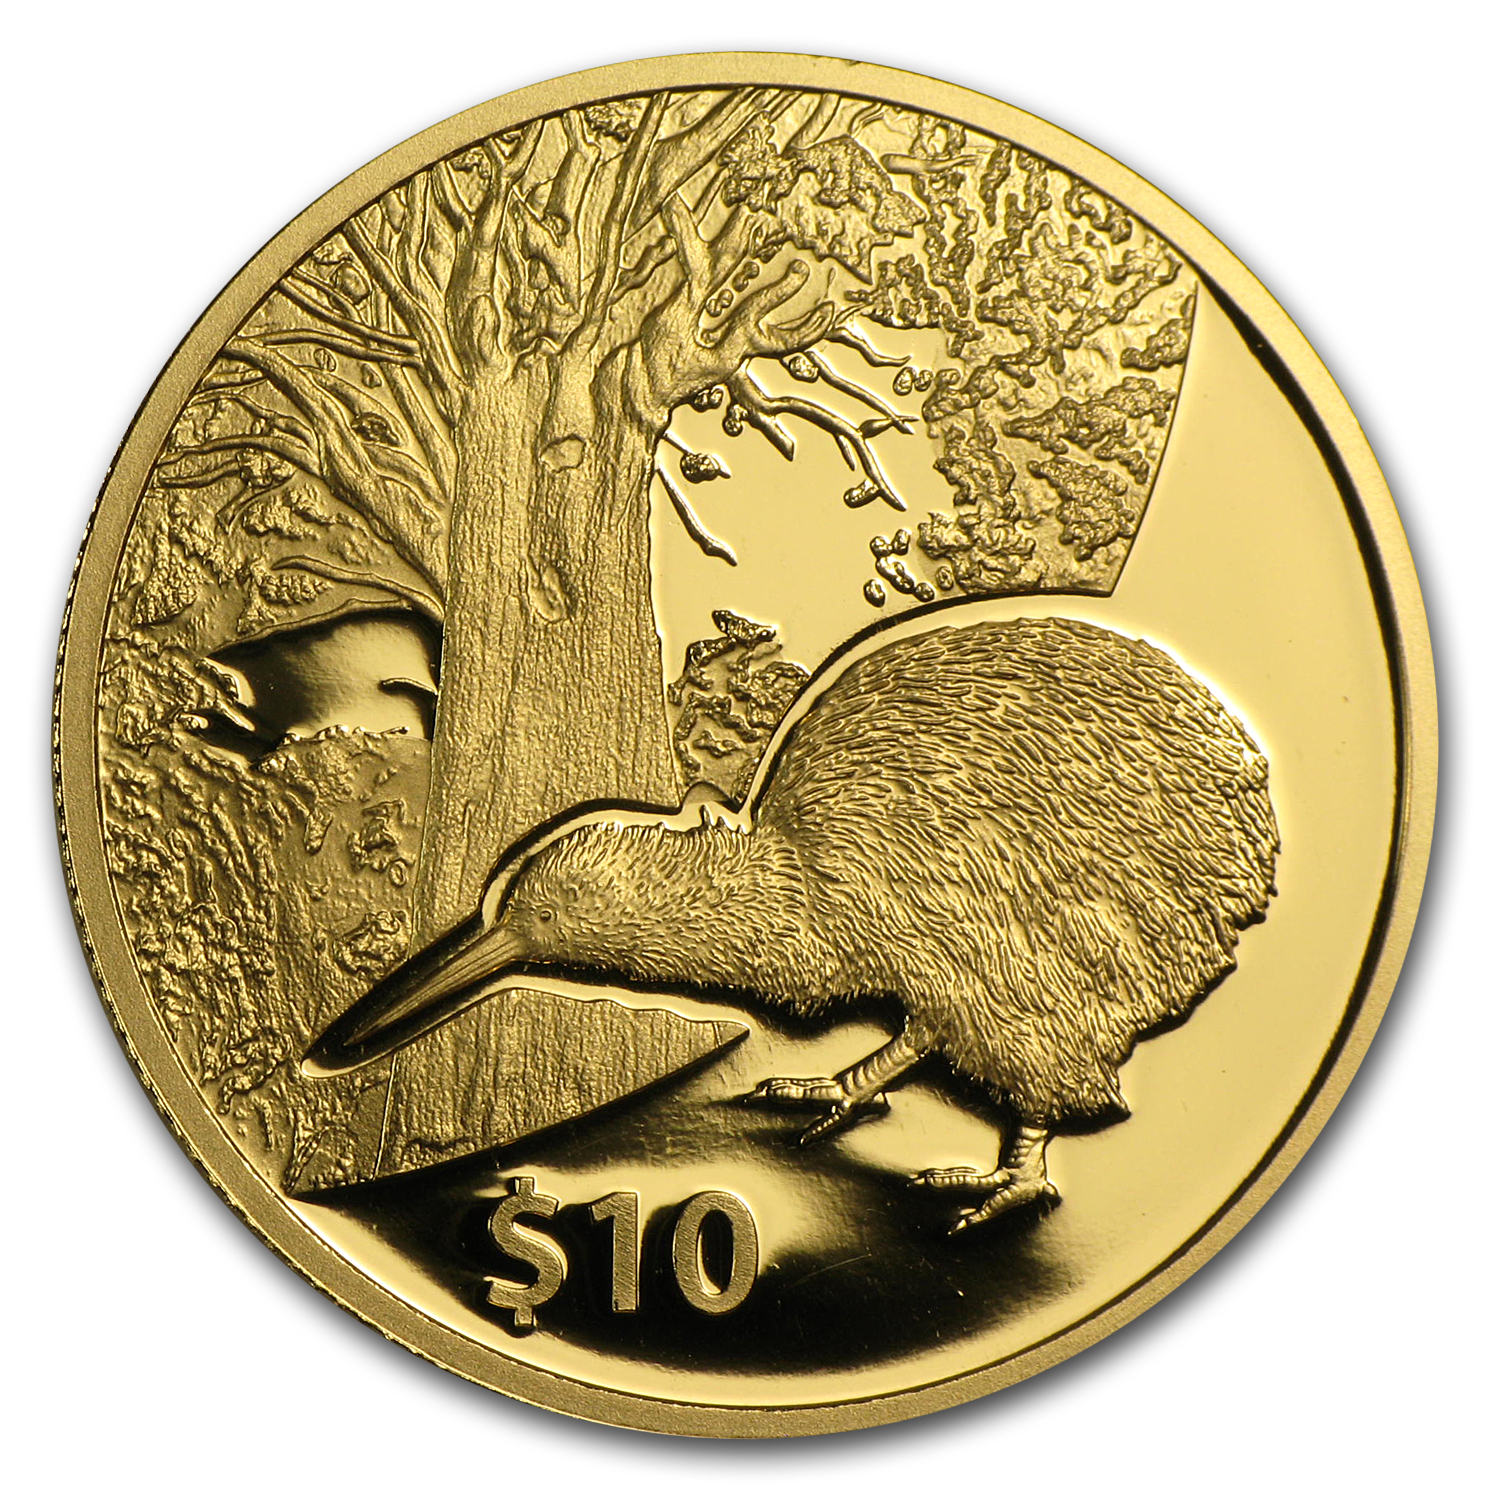 2013 Kiwi Treasures $10 Tane Mahuta 1/4 oz Gold (W/Box & Coa)